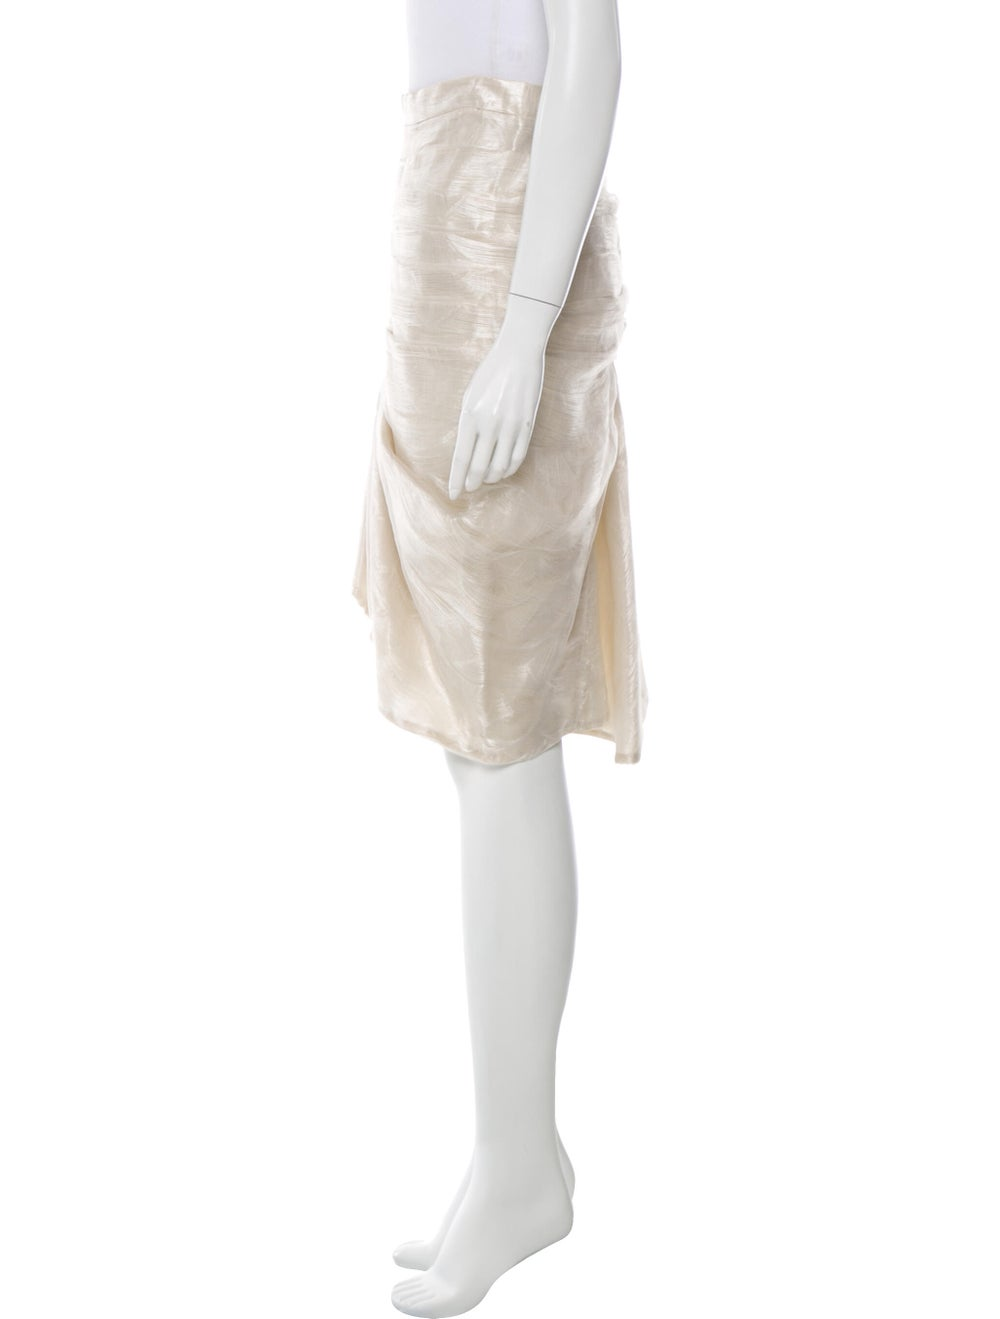 Paco Rabanne Pleated Accents Knee-Length Skirt - image 2